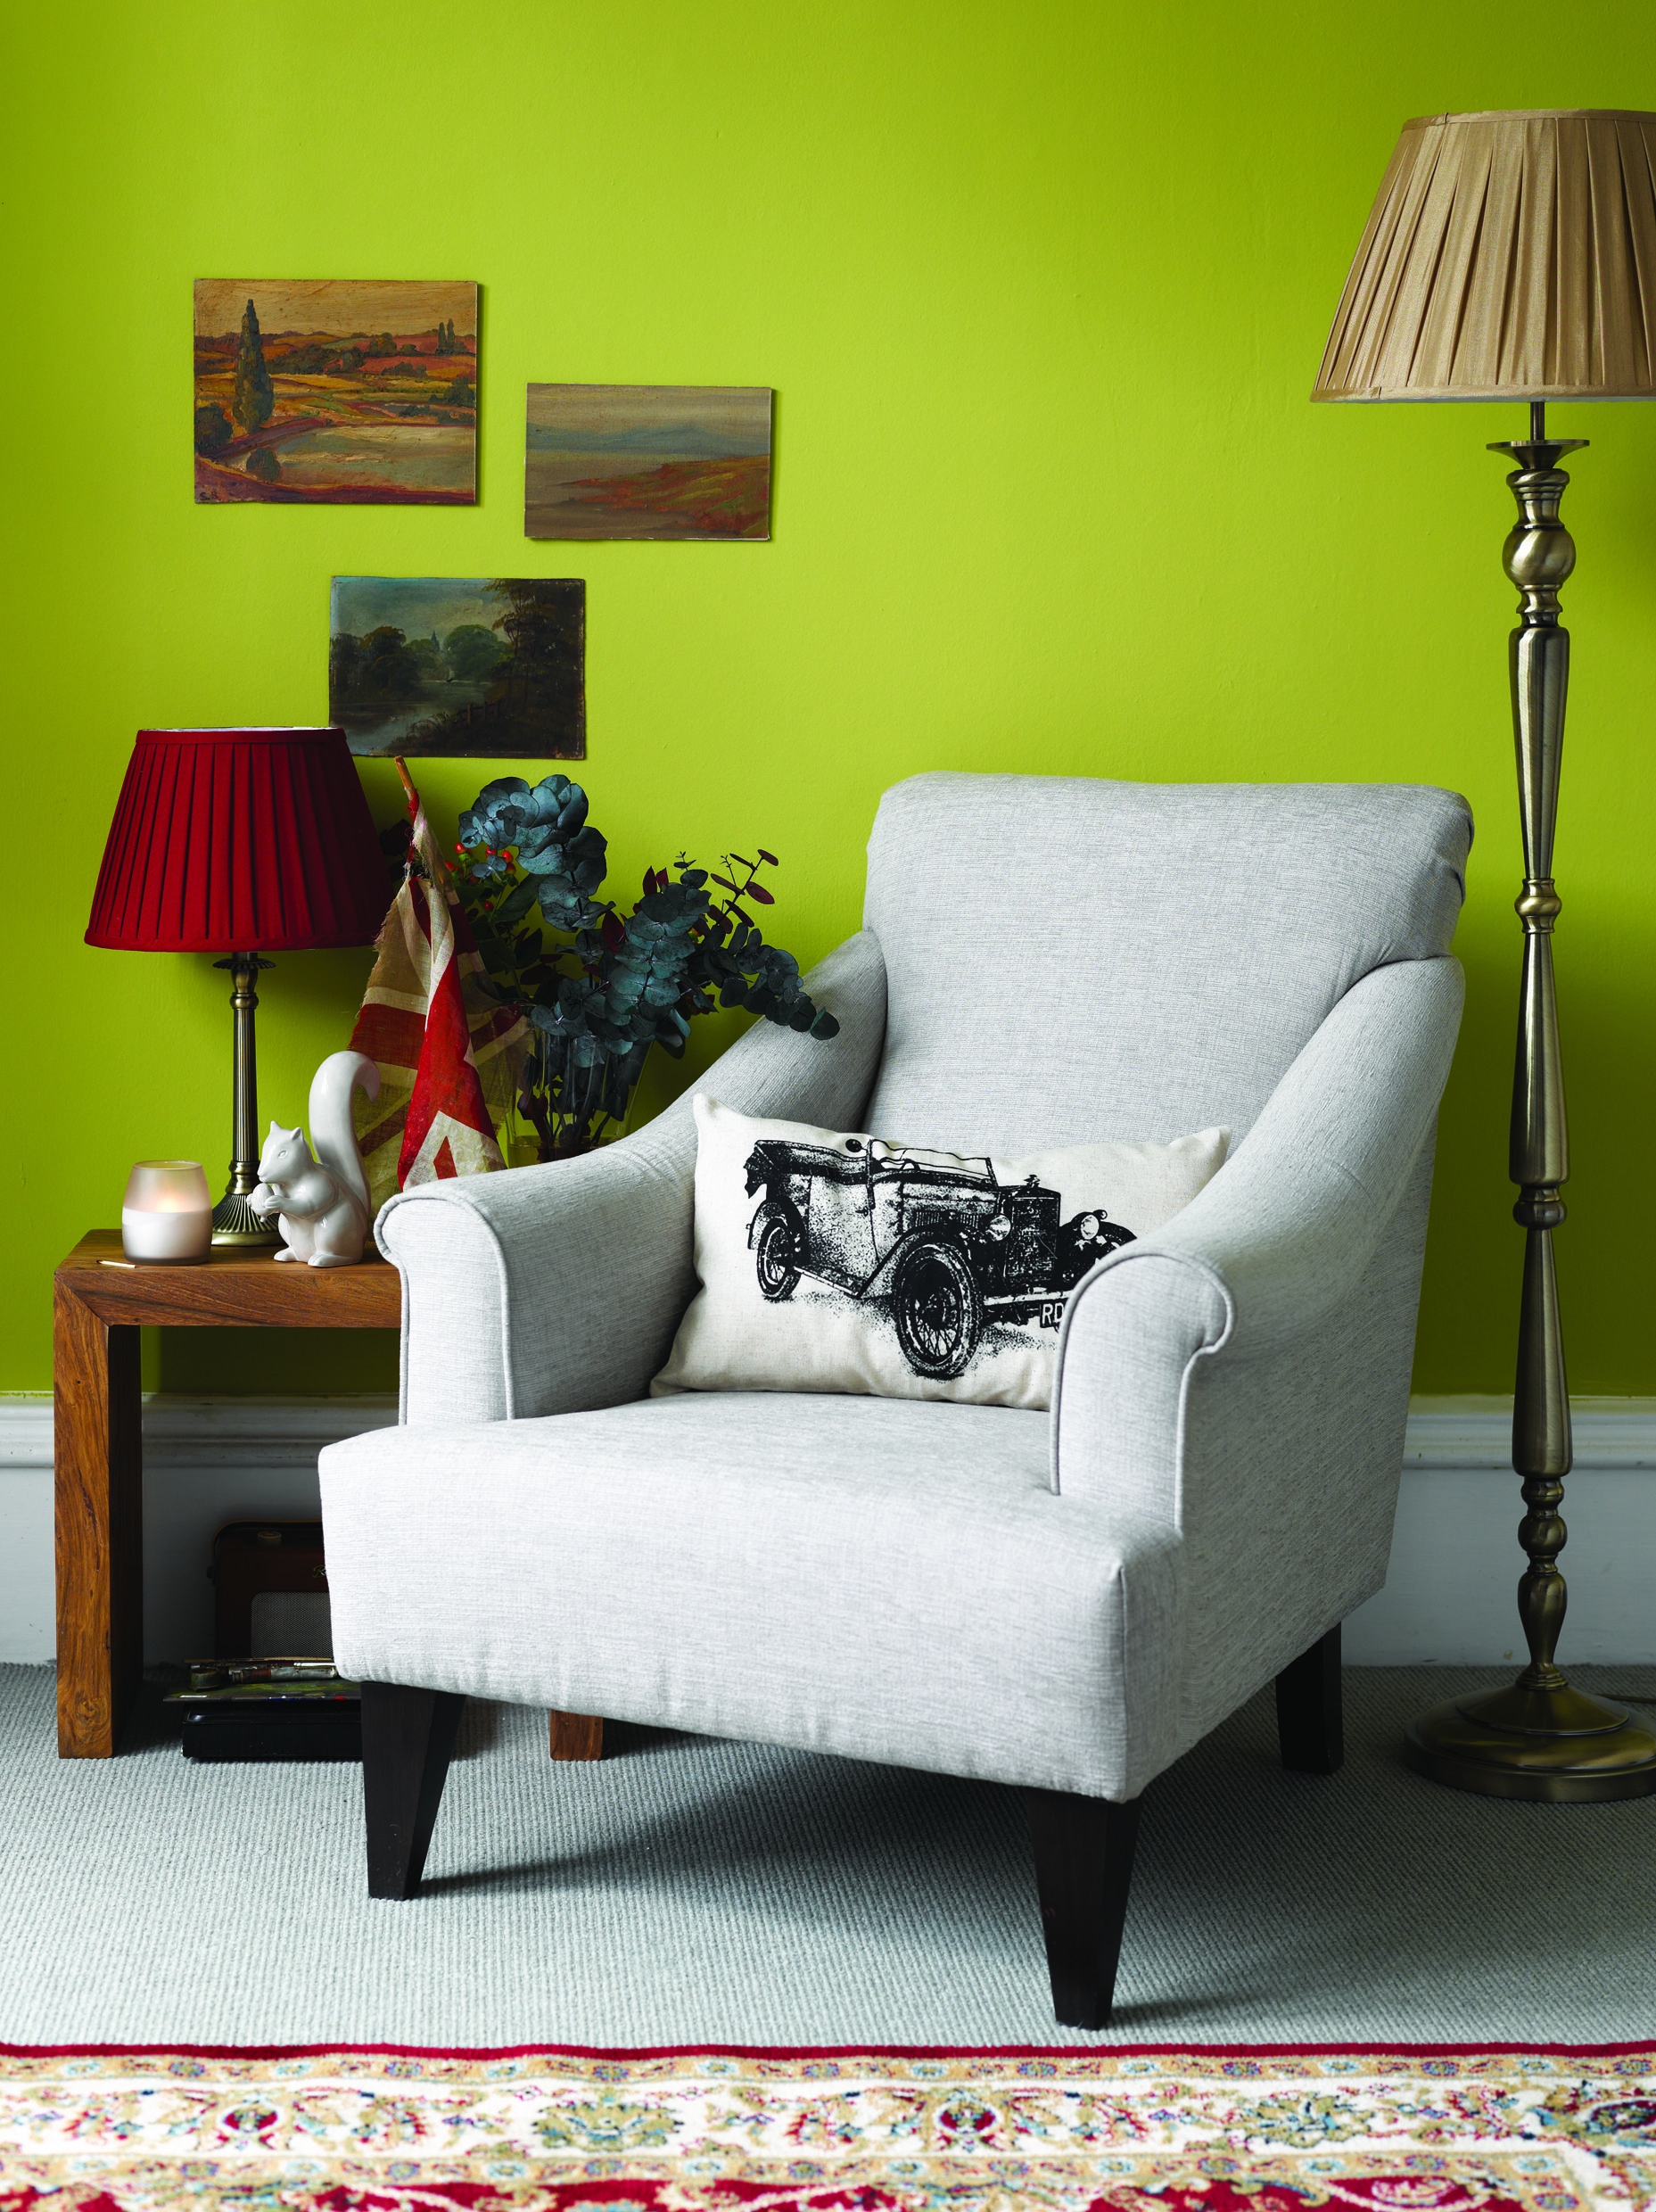 Lime Green Walls With Pleated Lampshades And A Squirrel Sculpture